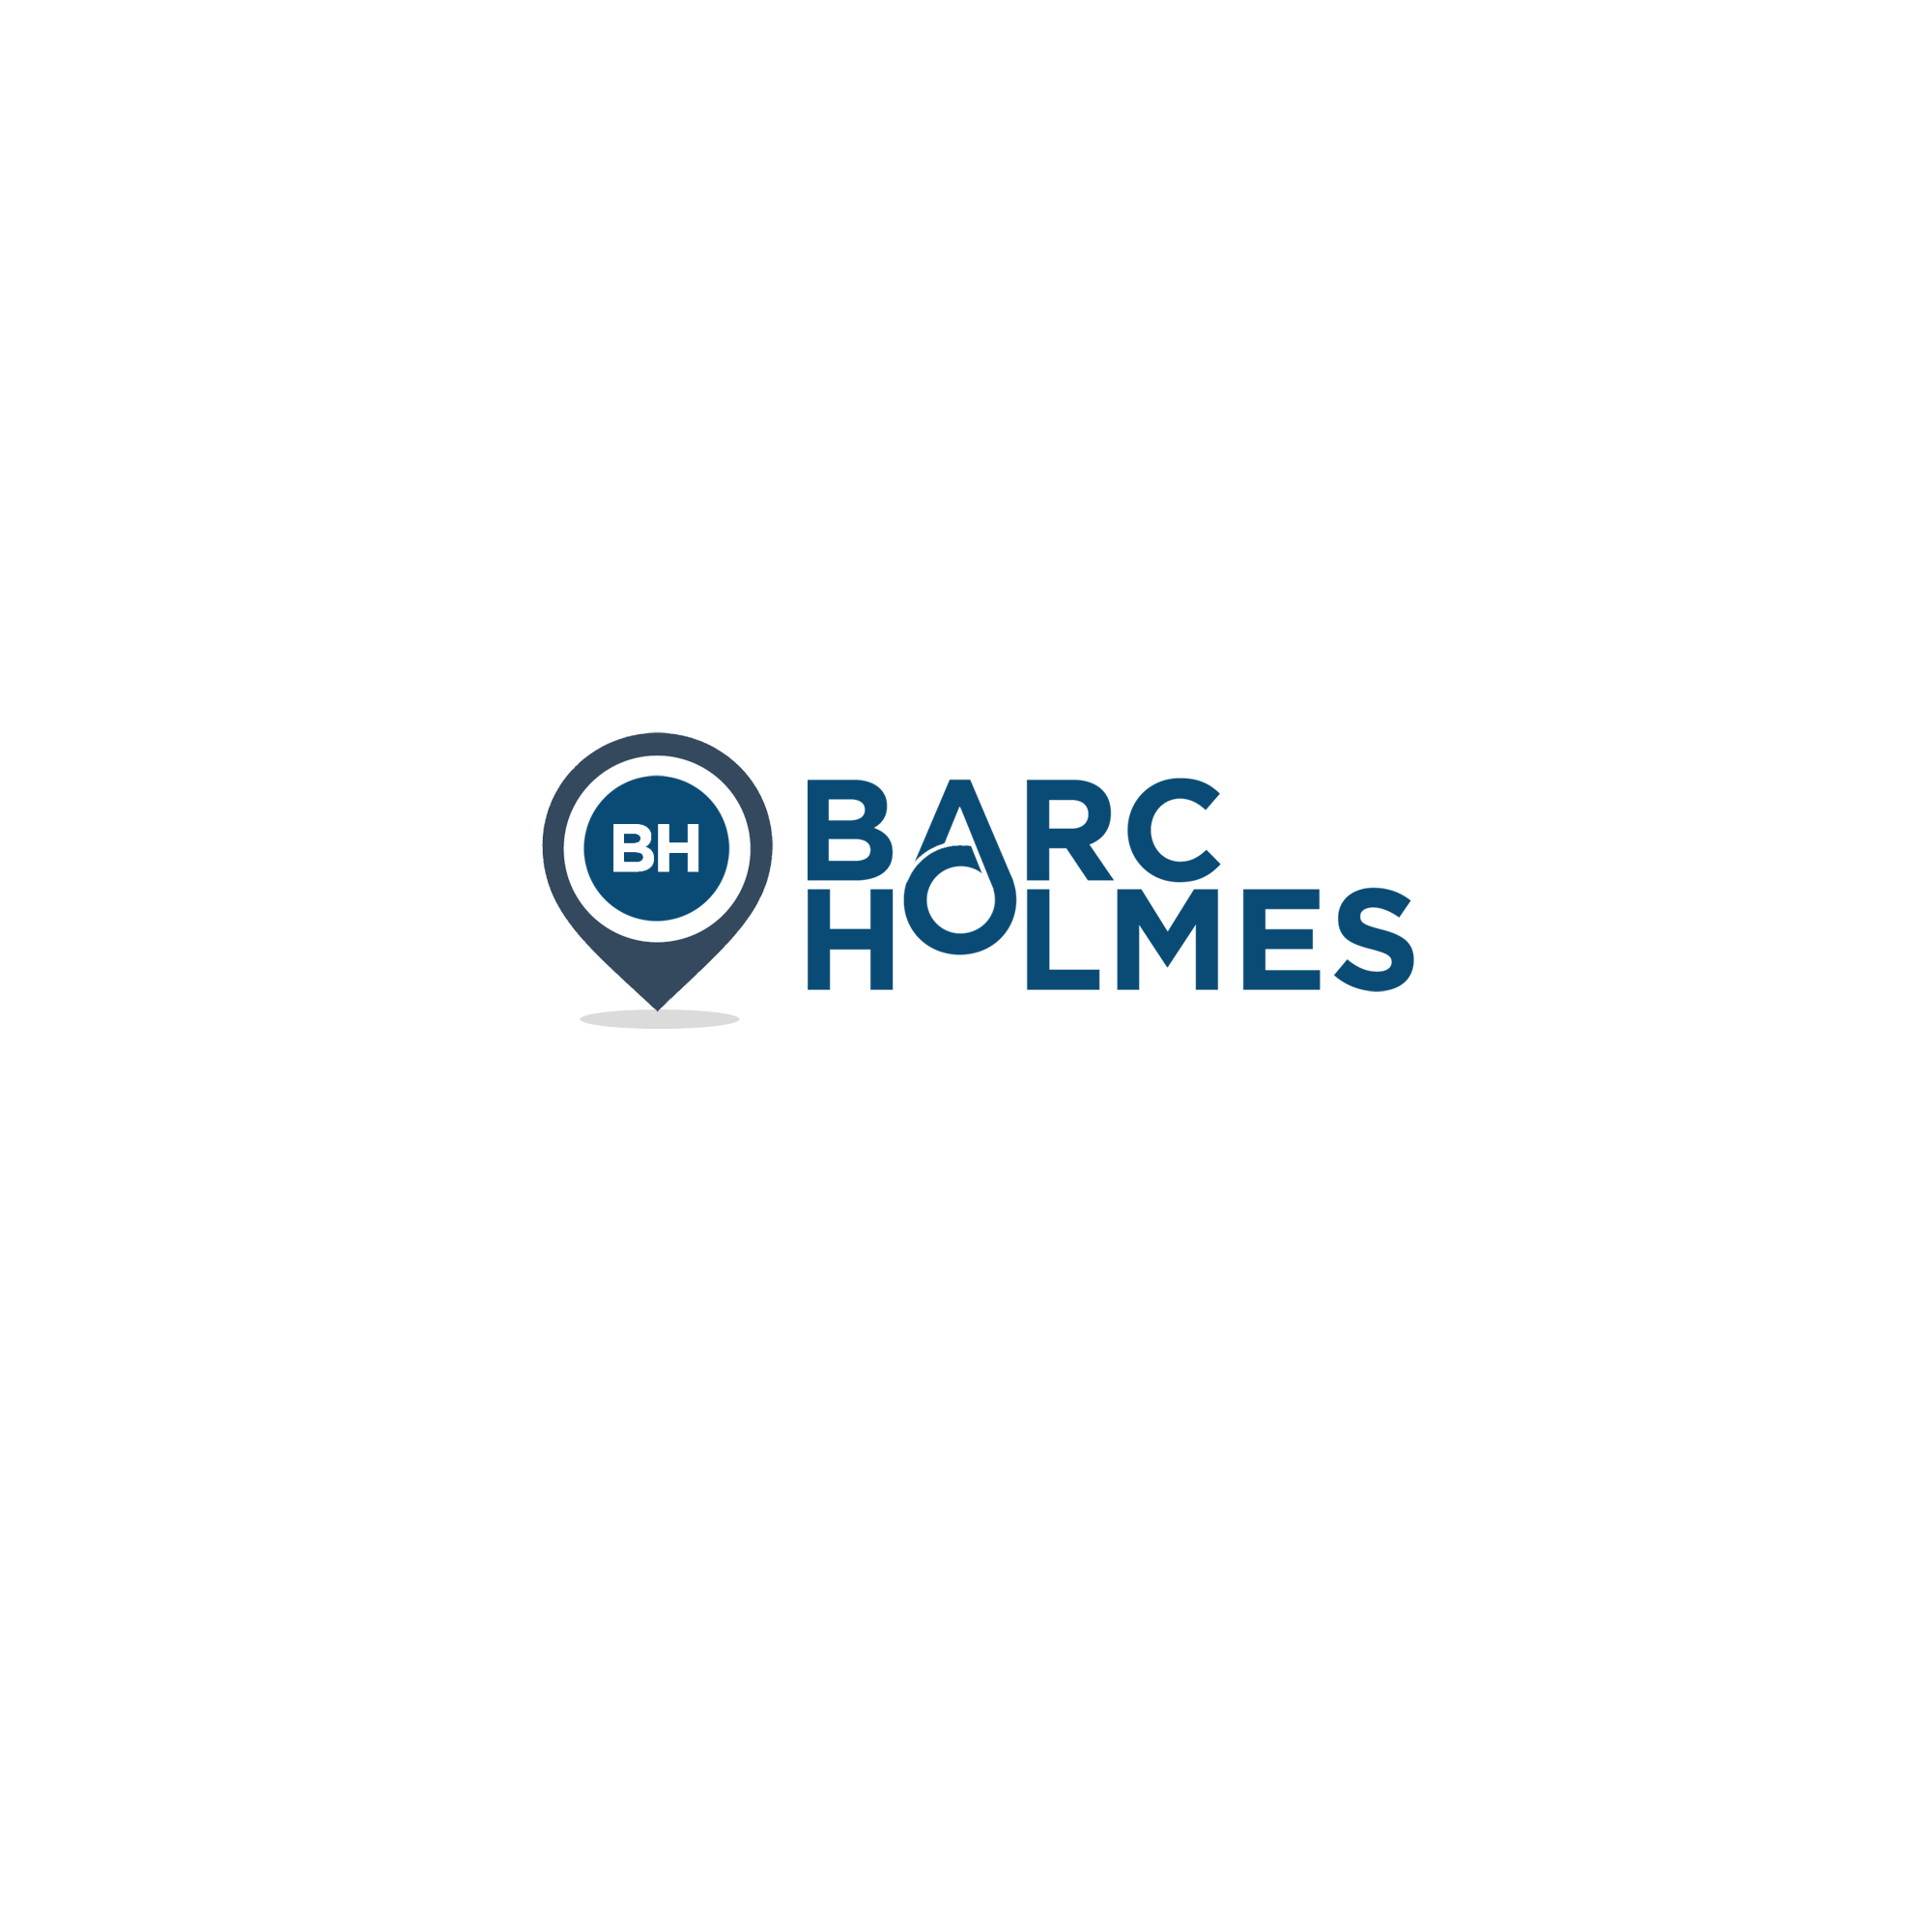 Create a logo for Barc Holmes, technology consultant